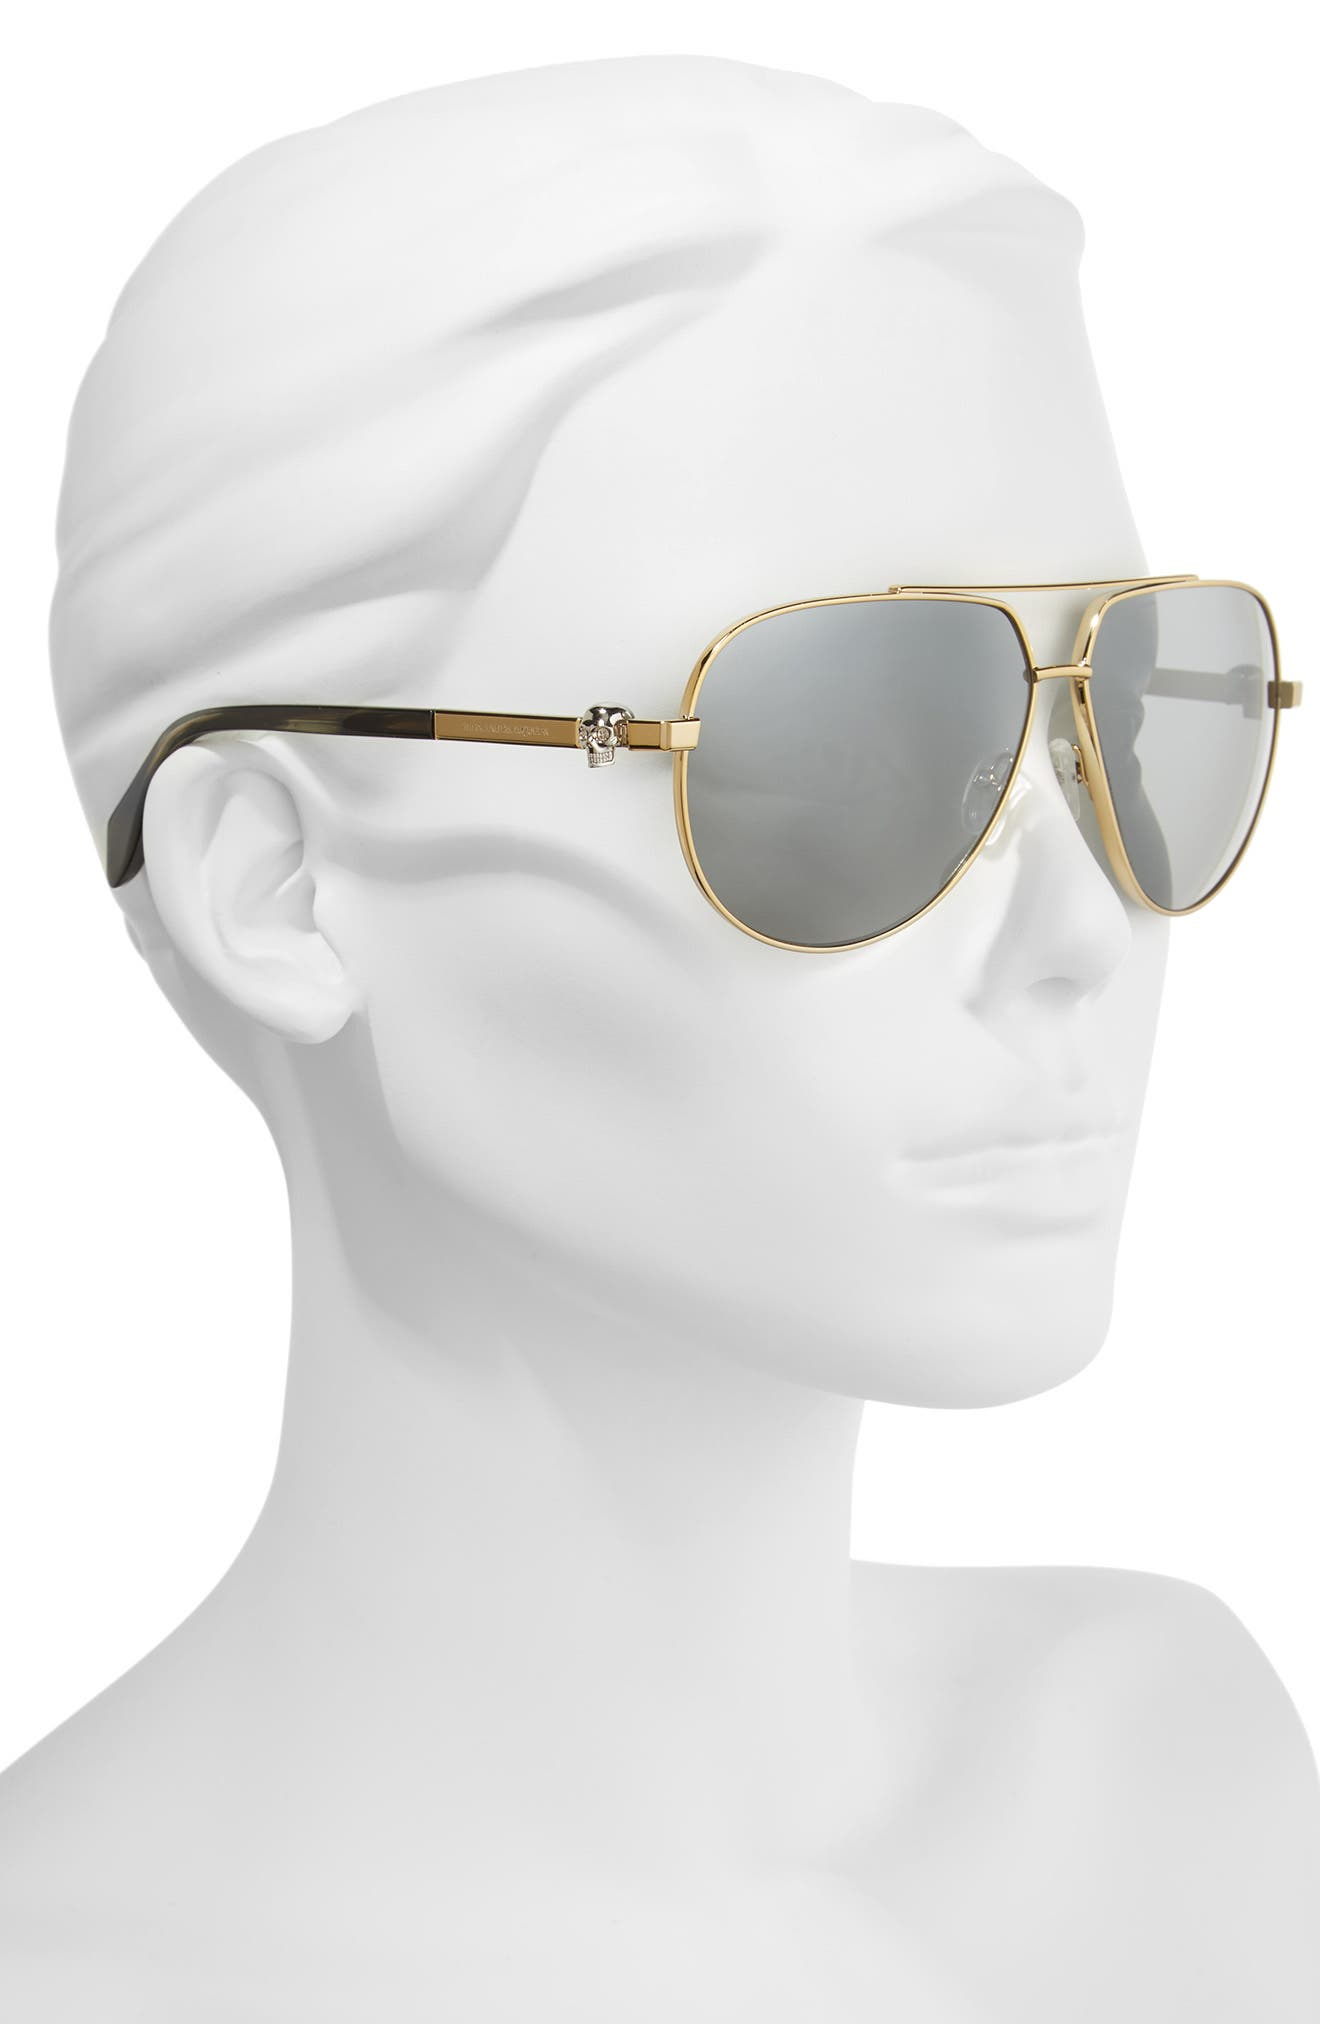 63mm Aviator Sunglasses,                             Alternate thumbnail 2, color,                             Gold